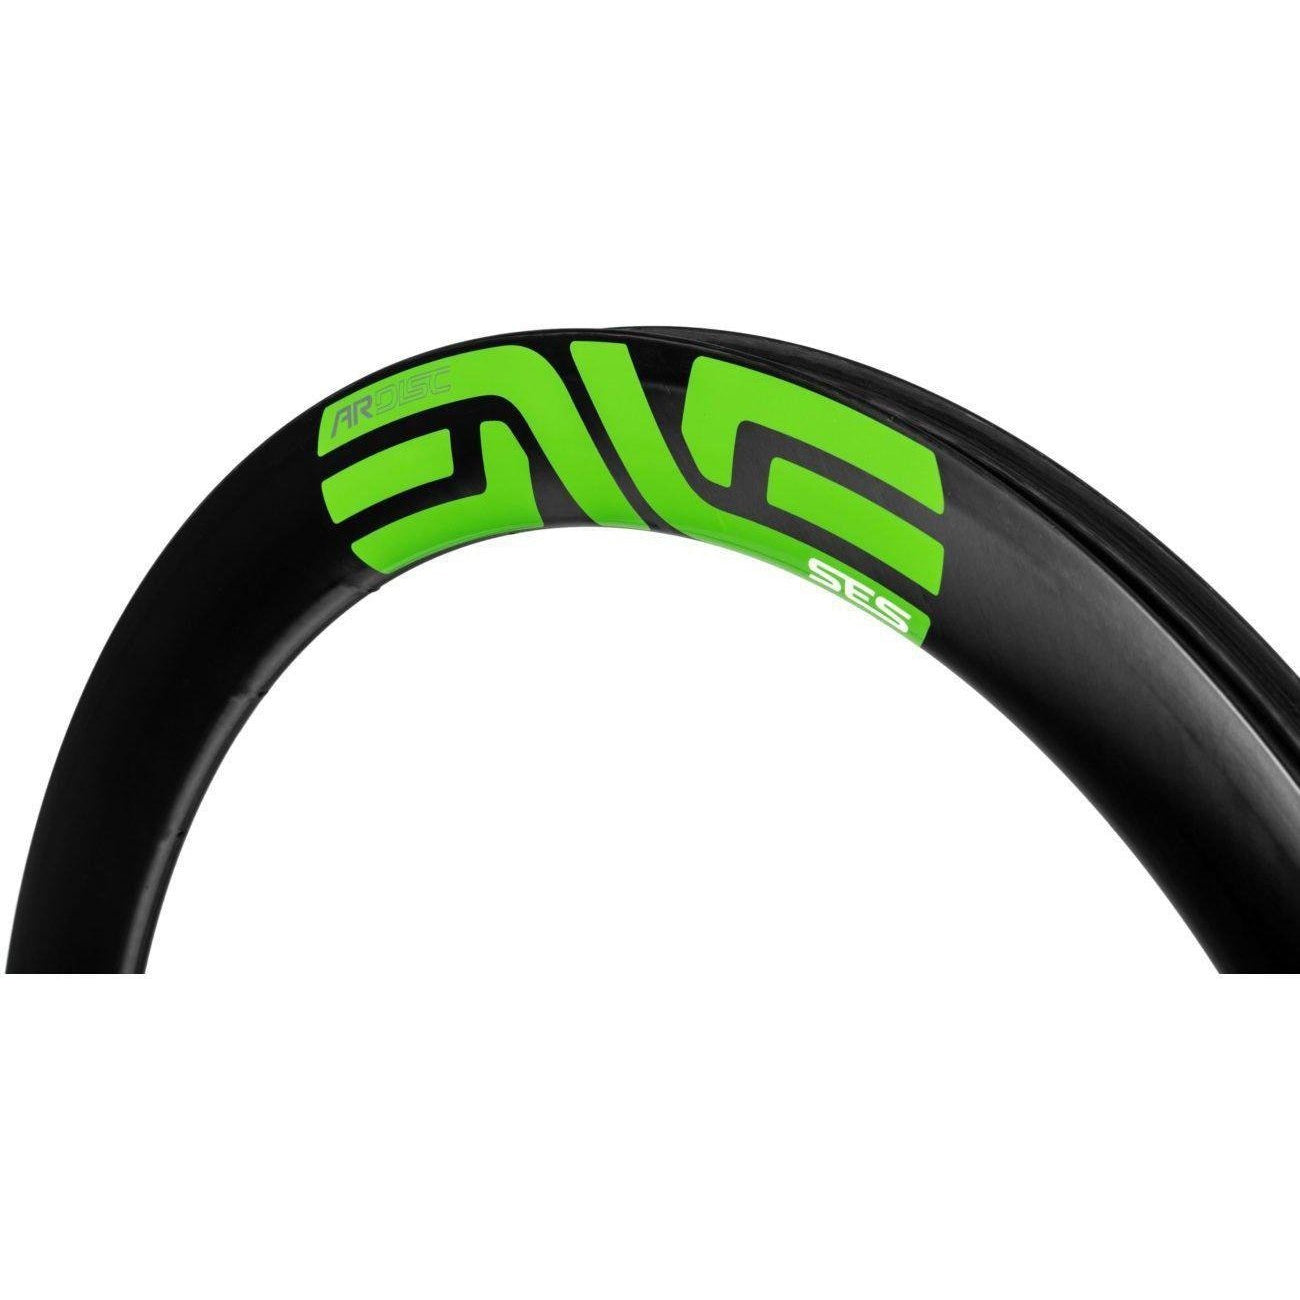 ENVE-ENVE SES 4.5 AR Disc Decals-SES 4.5 AR Disc-Rear 55mm-Green-EN70001000684-saddleback-elite-performance-cycling